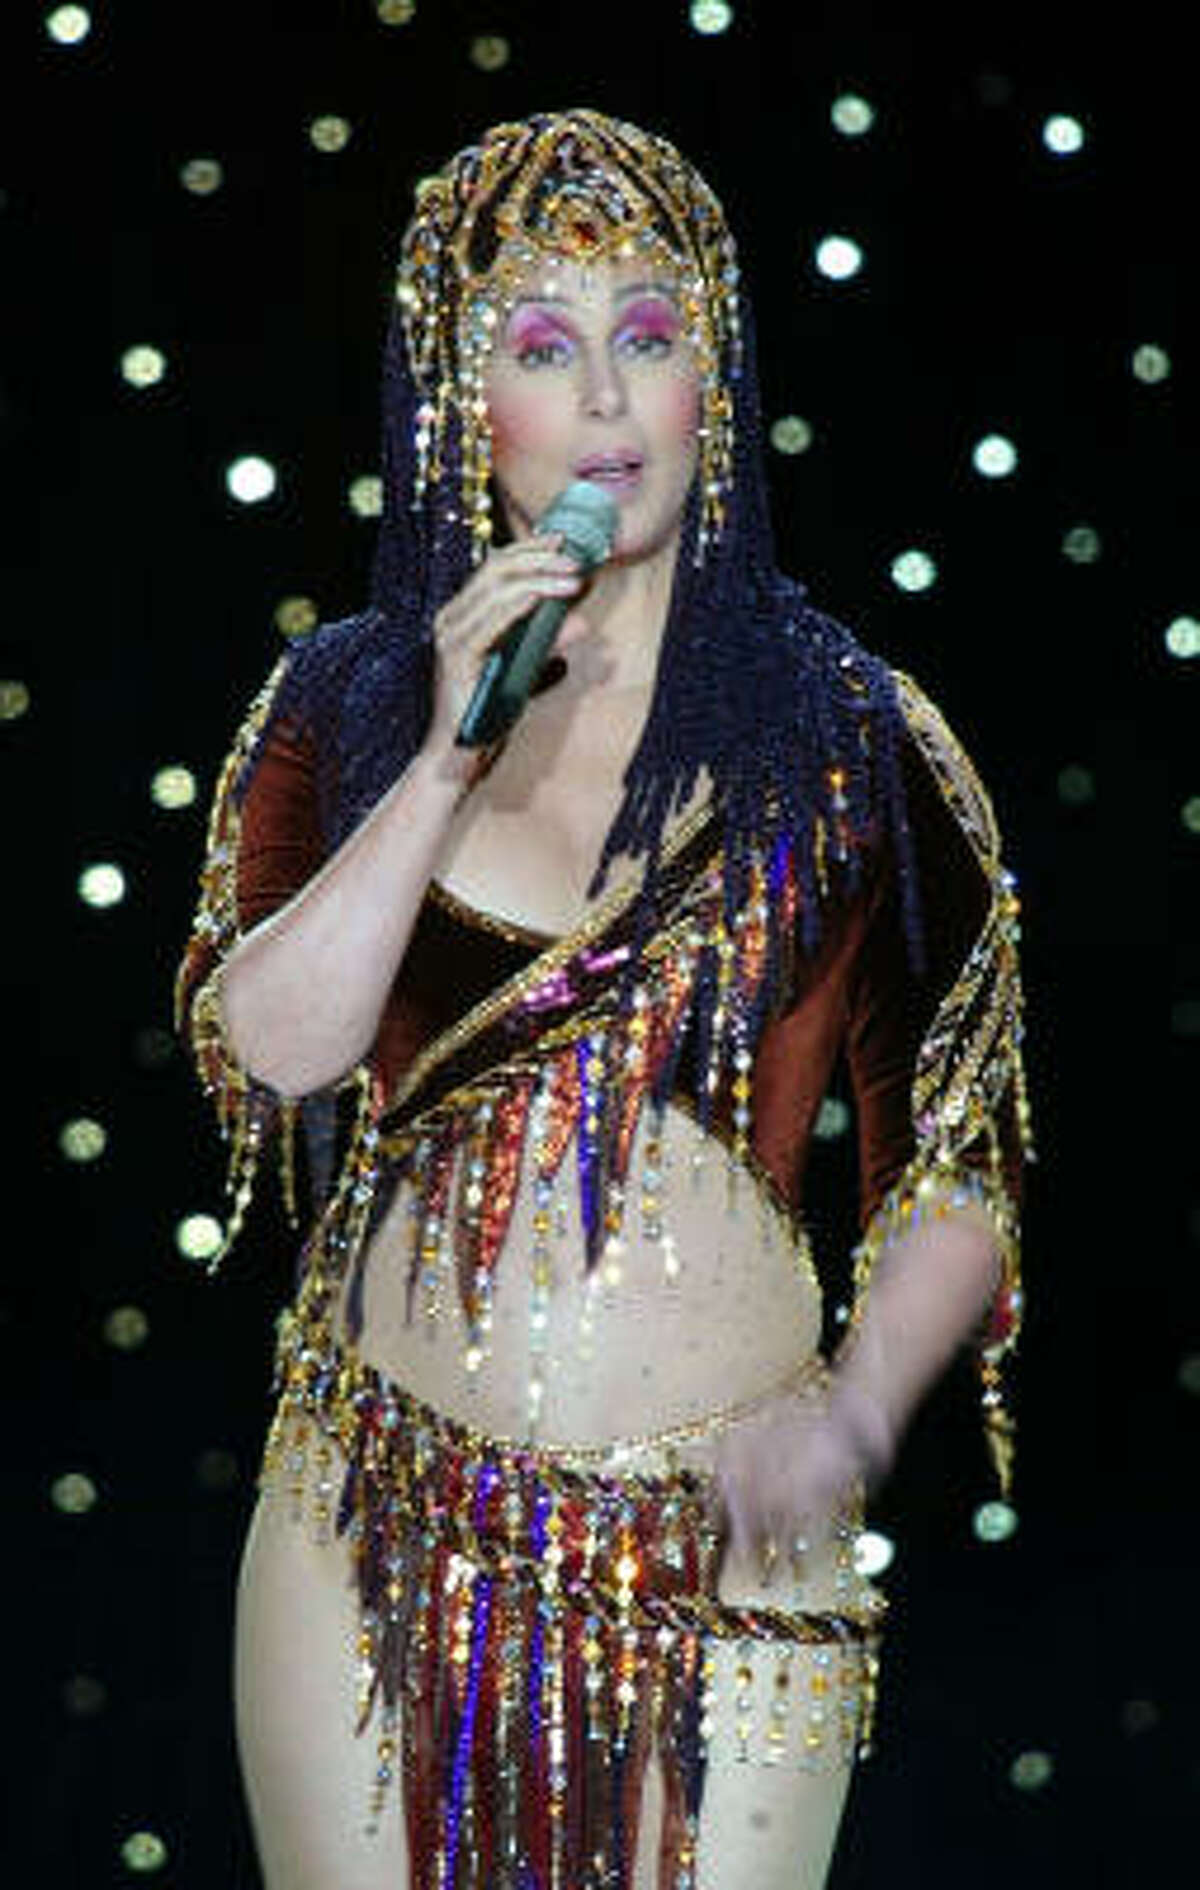 **FILE**Cher performs during her concert in Moscow, which is part of the diva's current farewell tour, on June 21, 2004. Cher announced that her current tour would be her last.